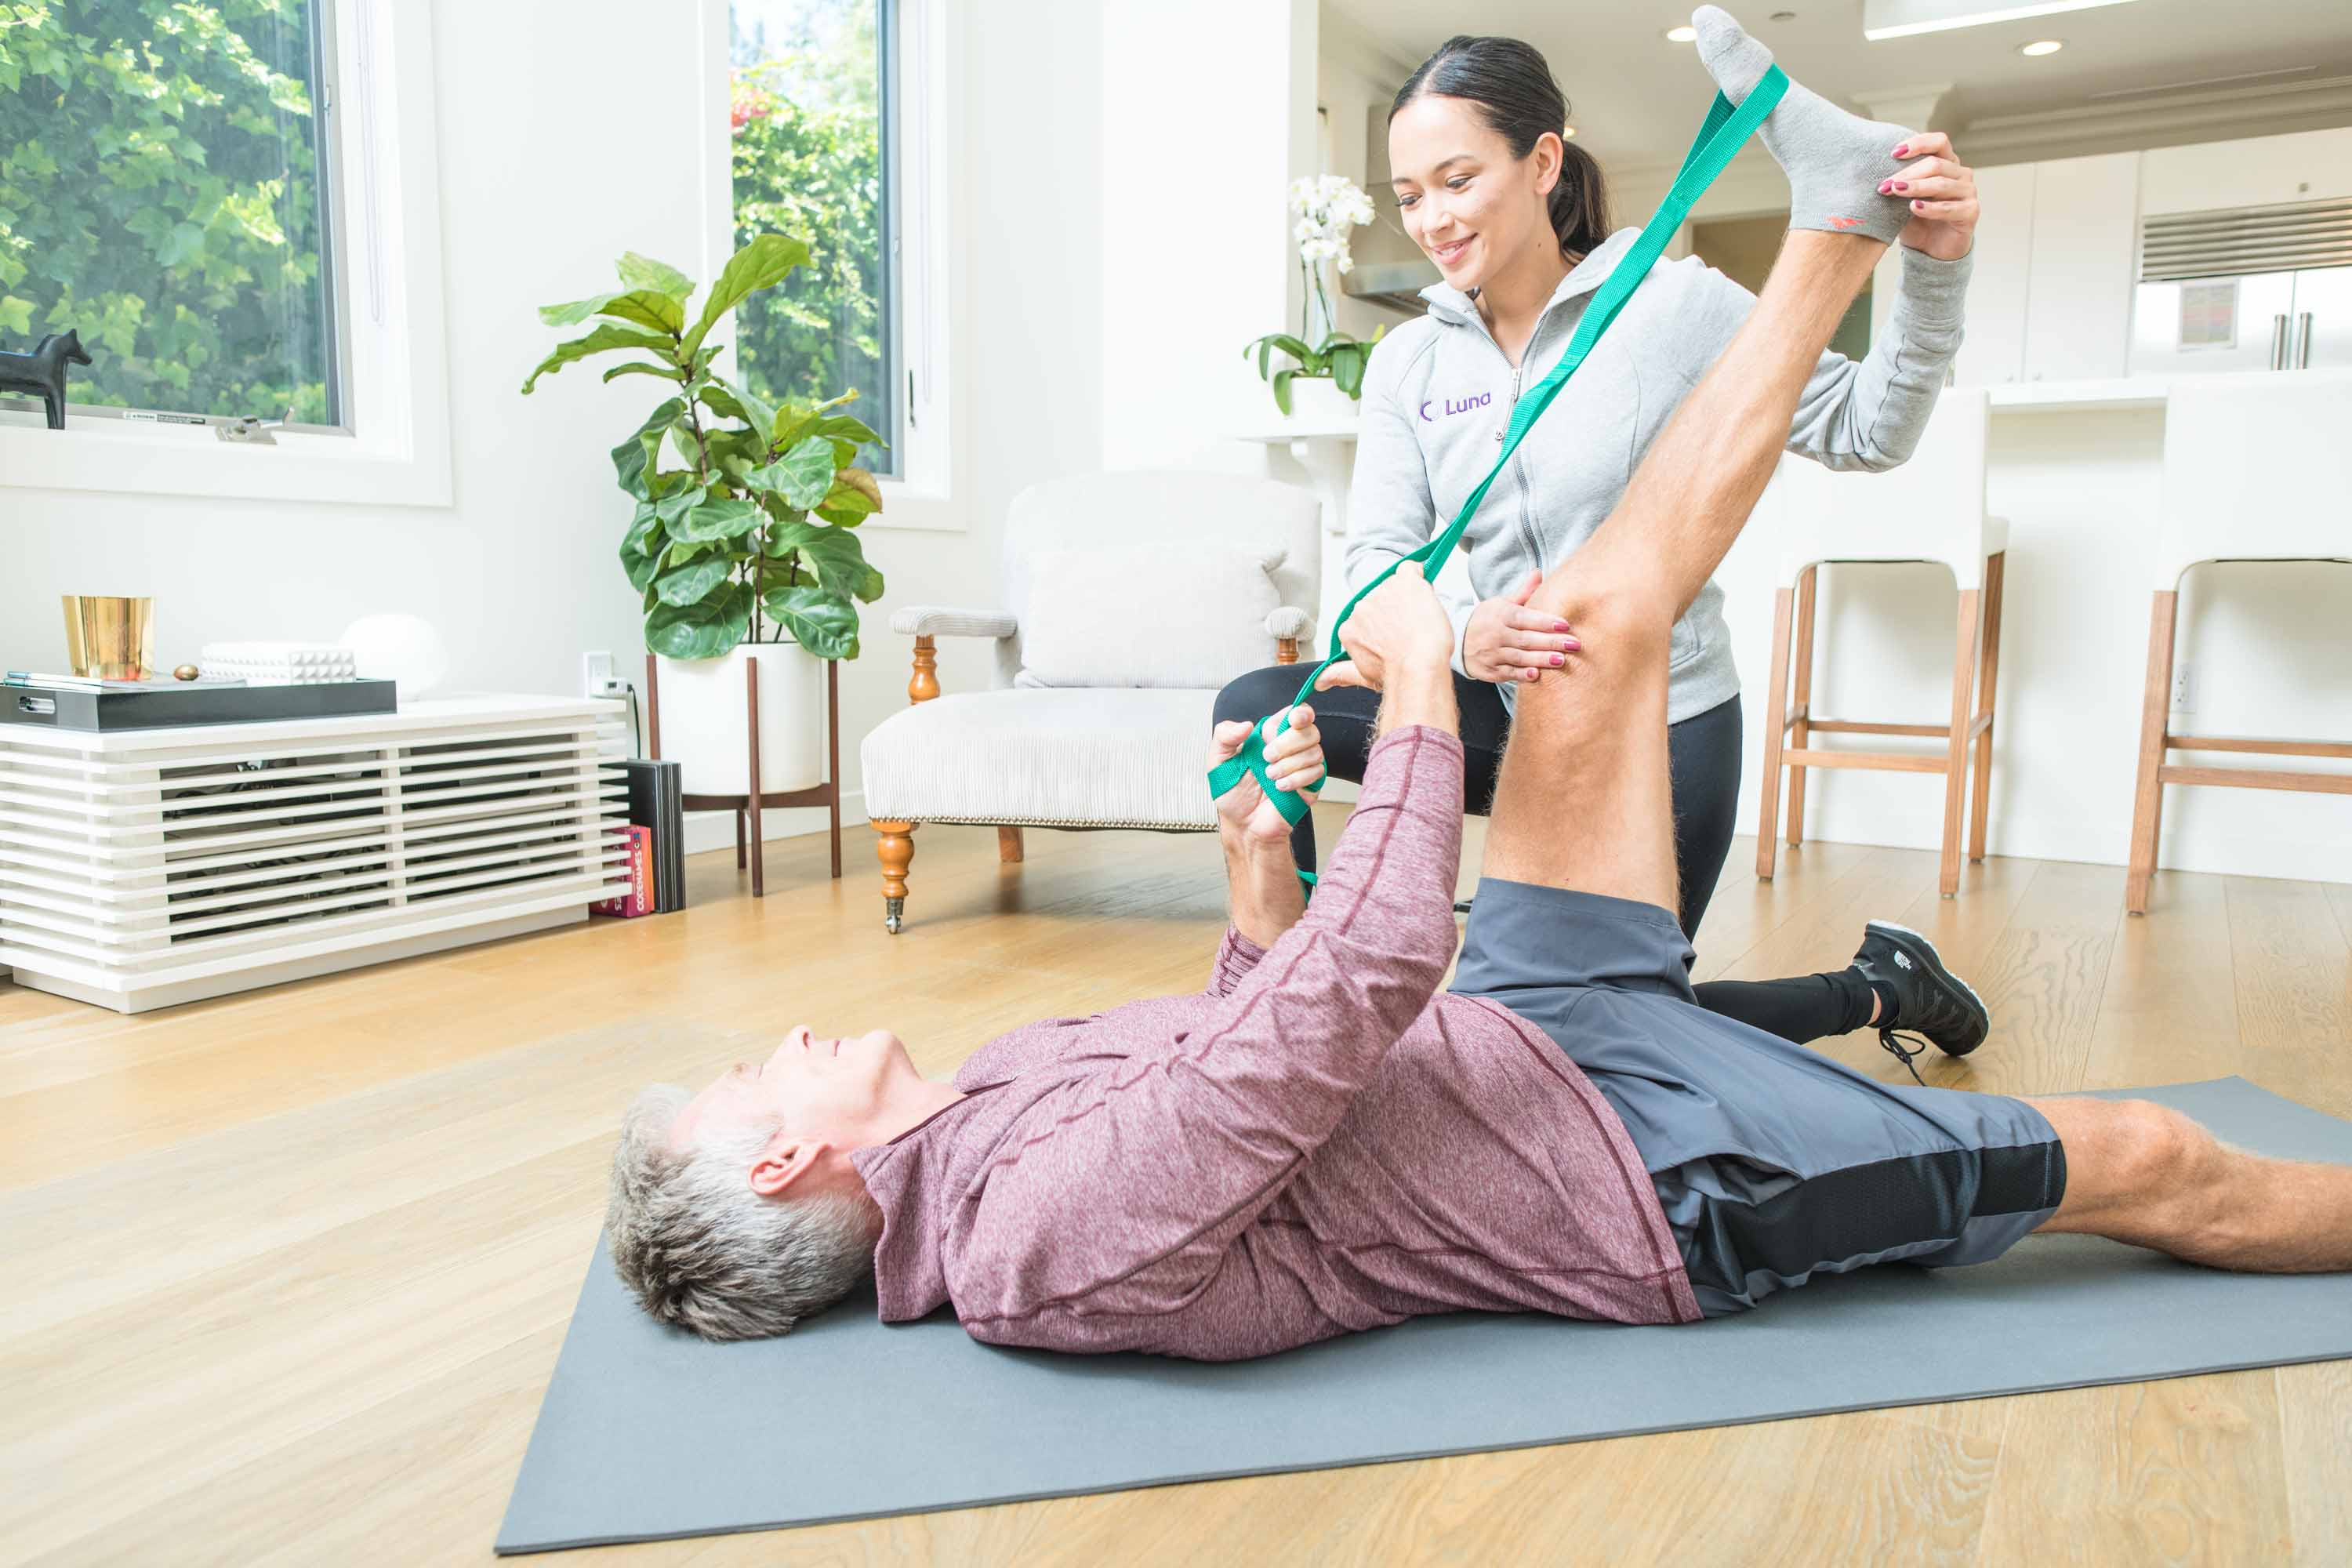 Physical Therapy and the Importance of Home Exercises